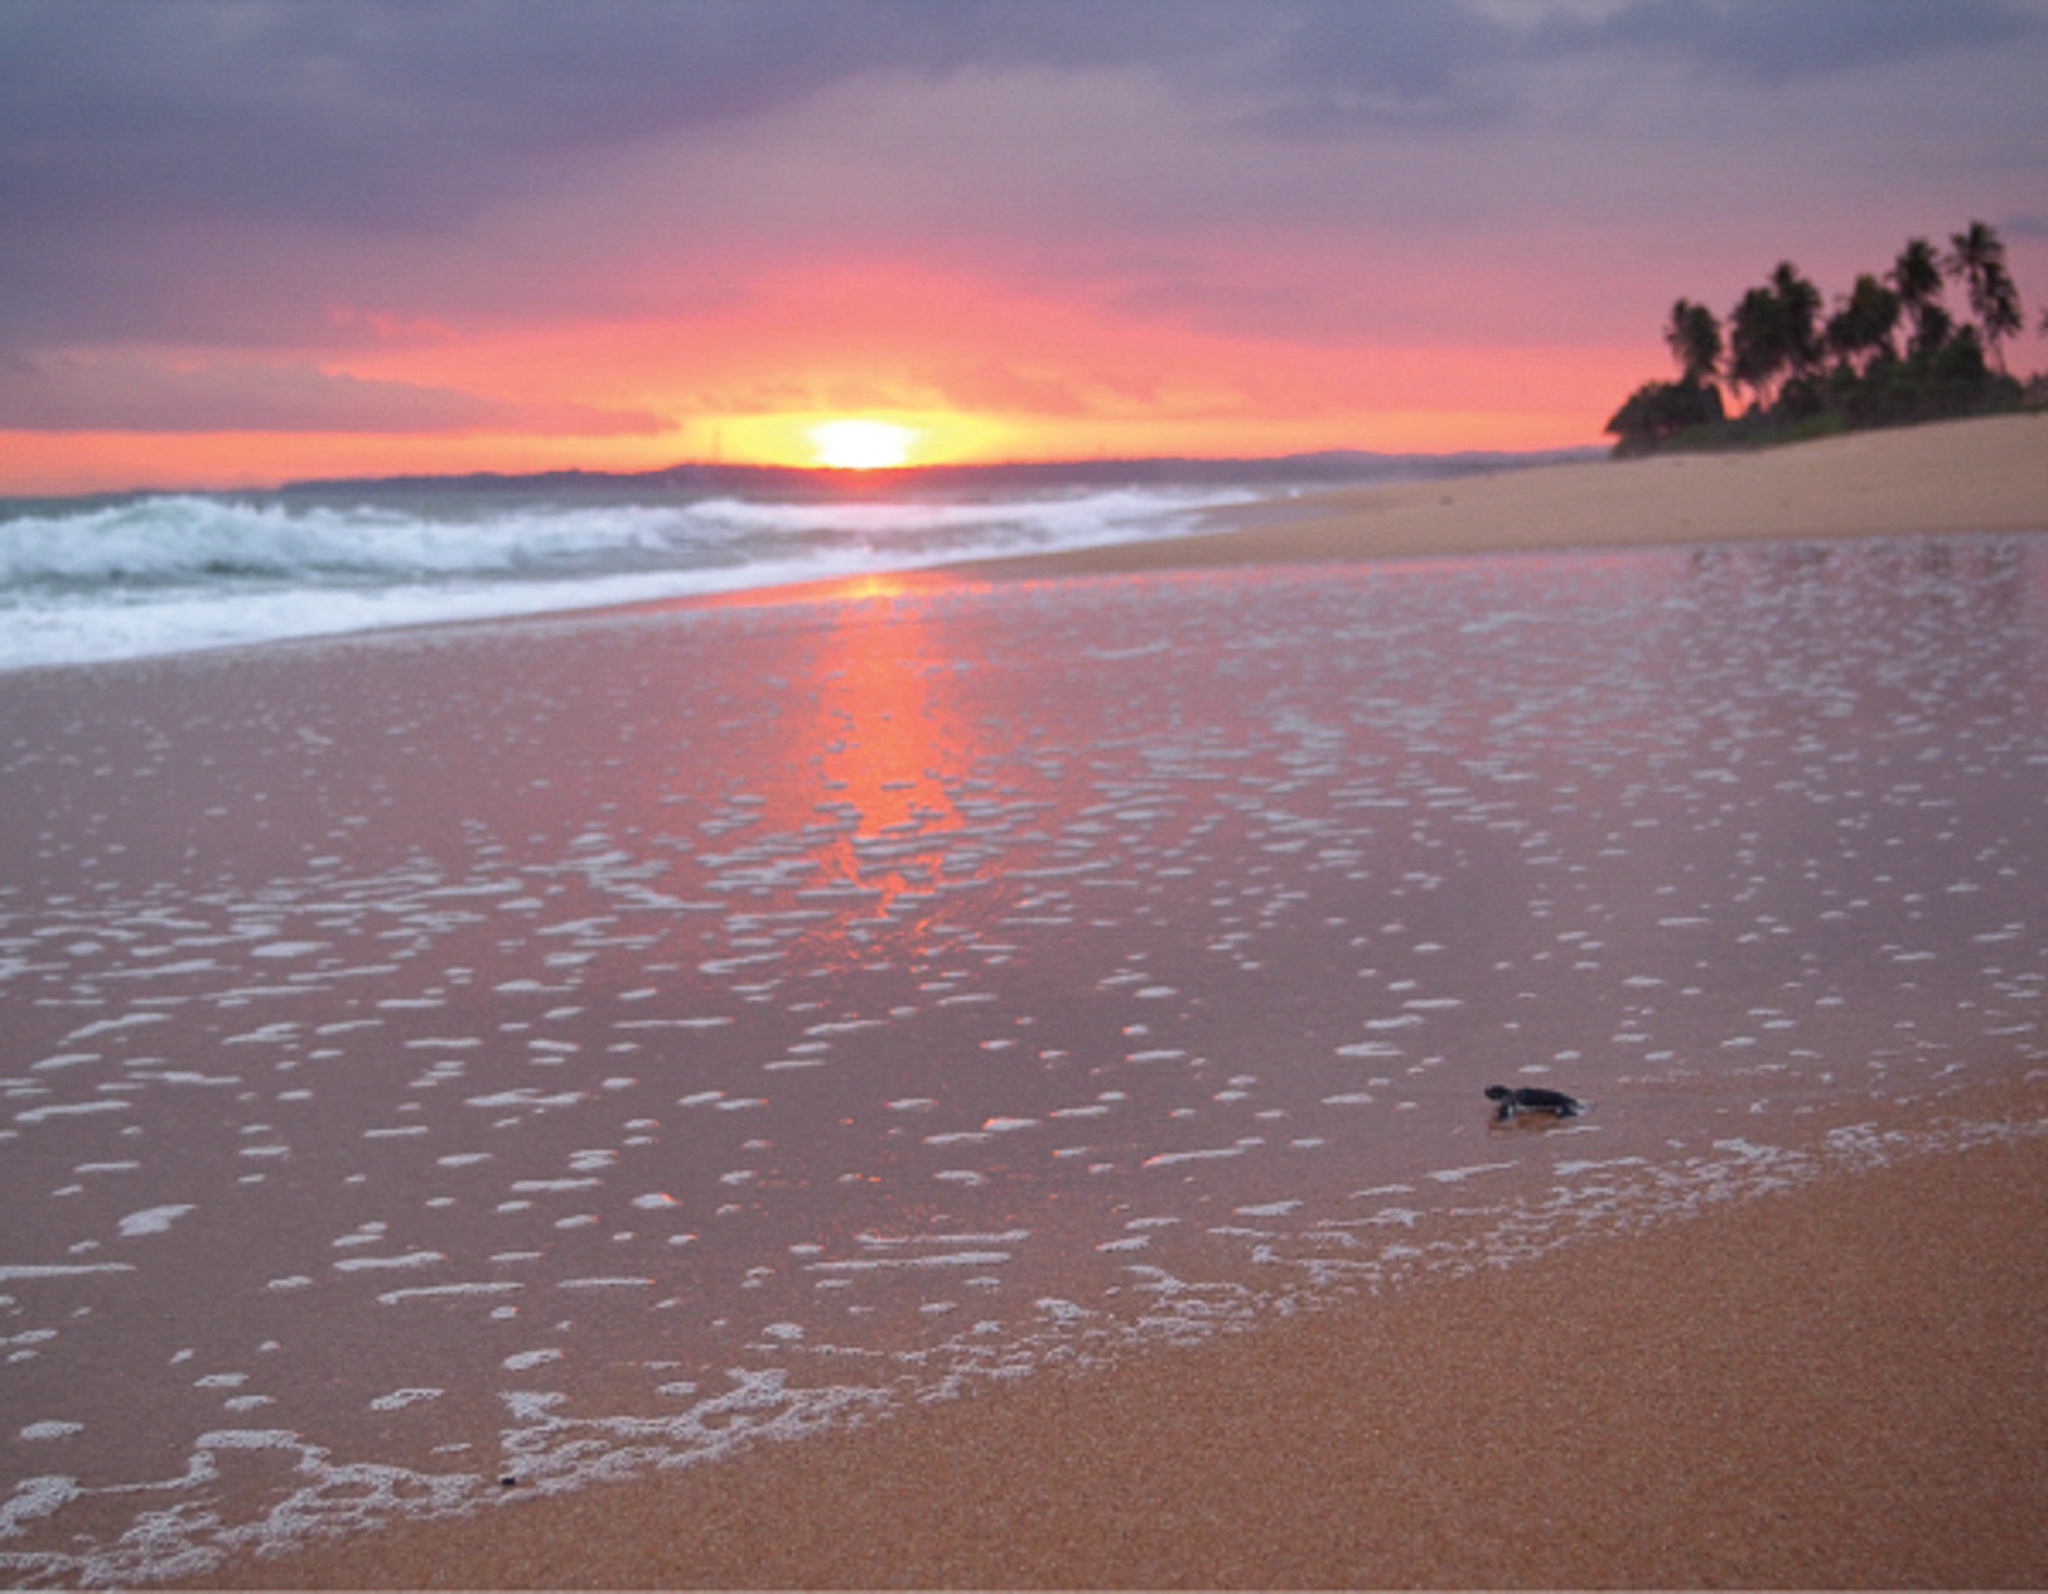 A popular site to spot turtles